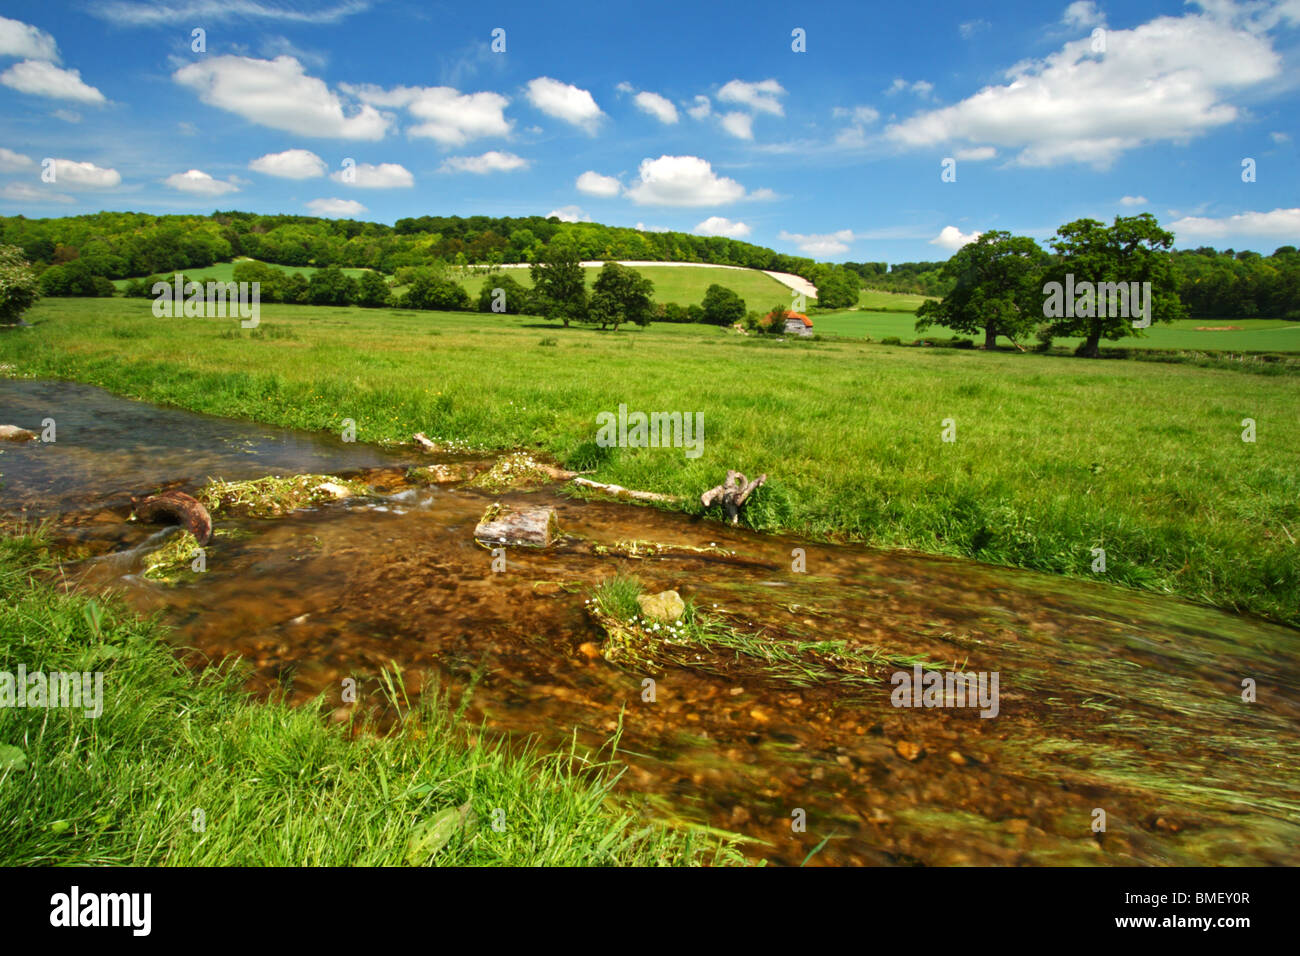 Hambleden Brook, a chalk stream in the Chilterns, flowing through a farmers field in Mill End, Buckinghamshire, - Stock Image